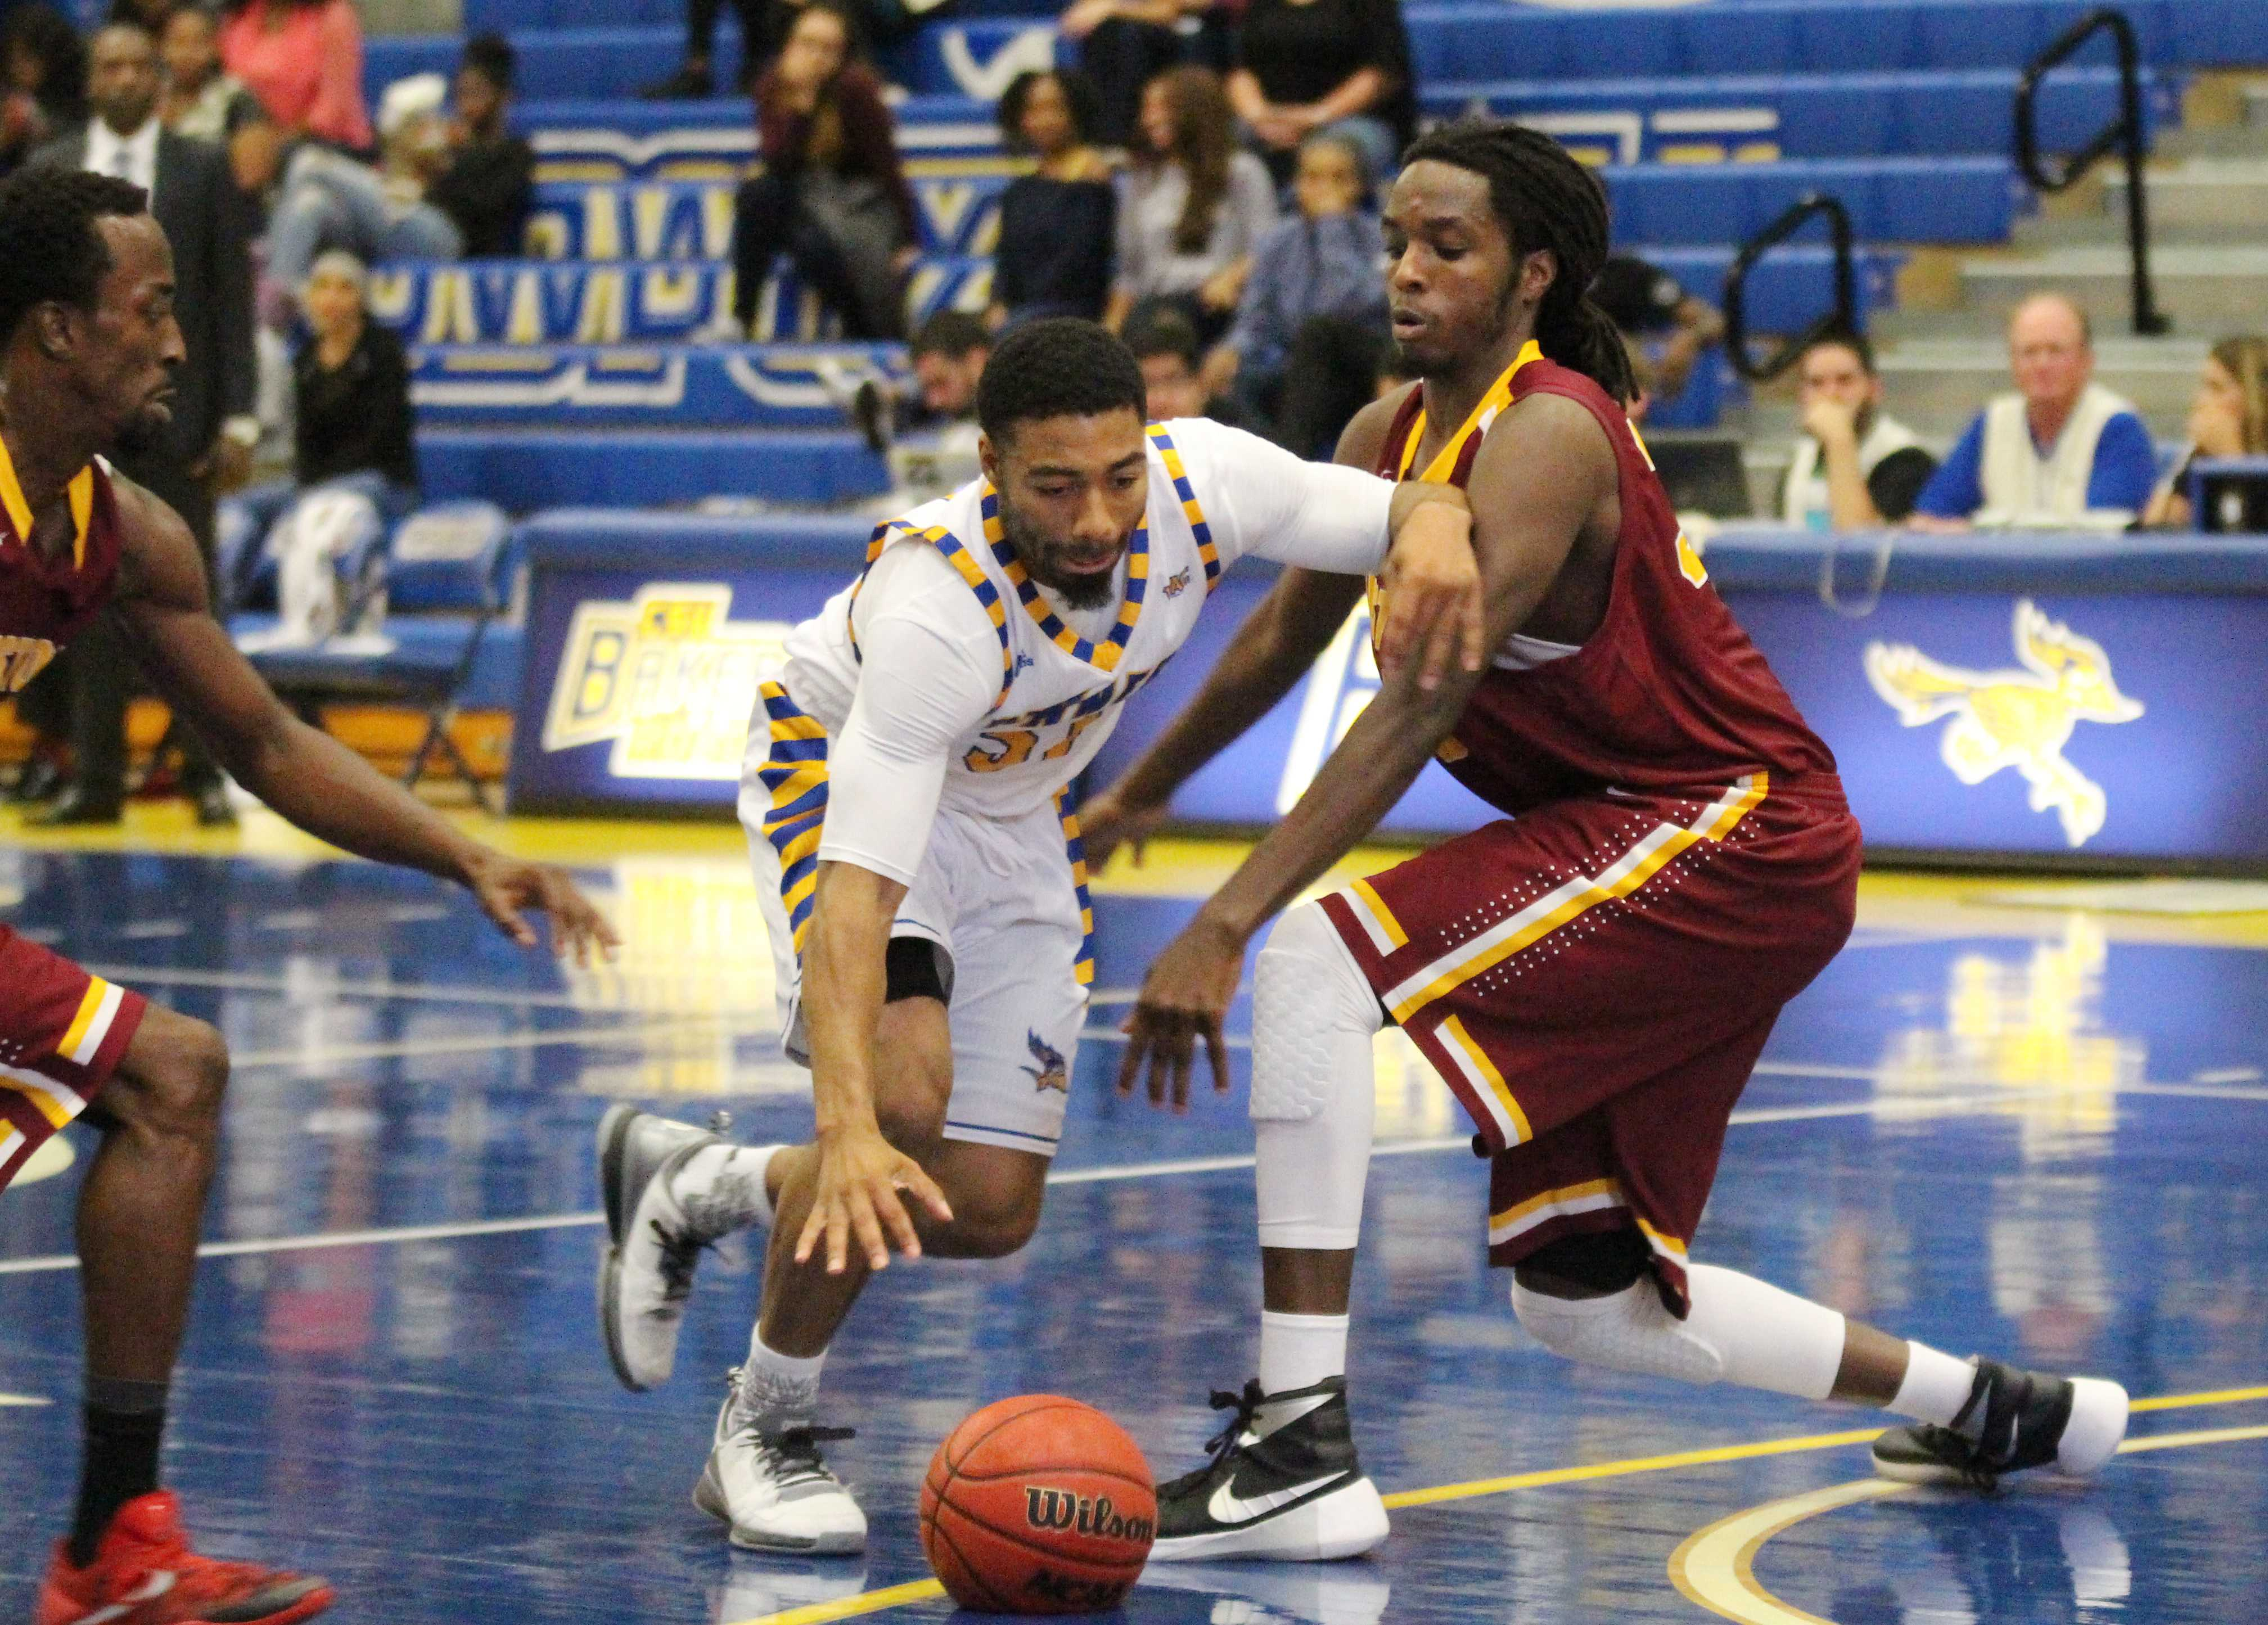 CSUB soaring to greater heights